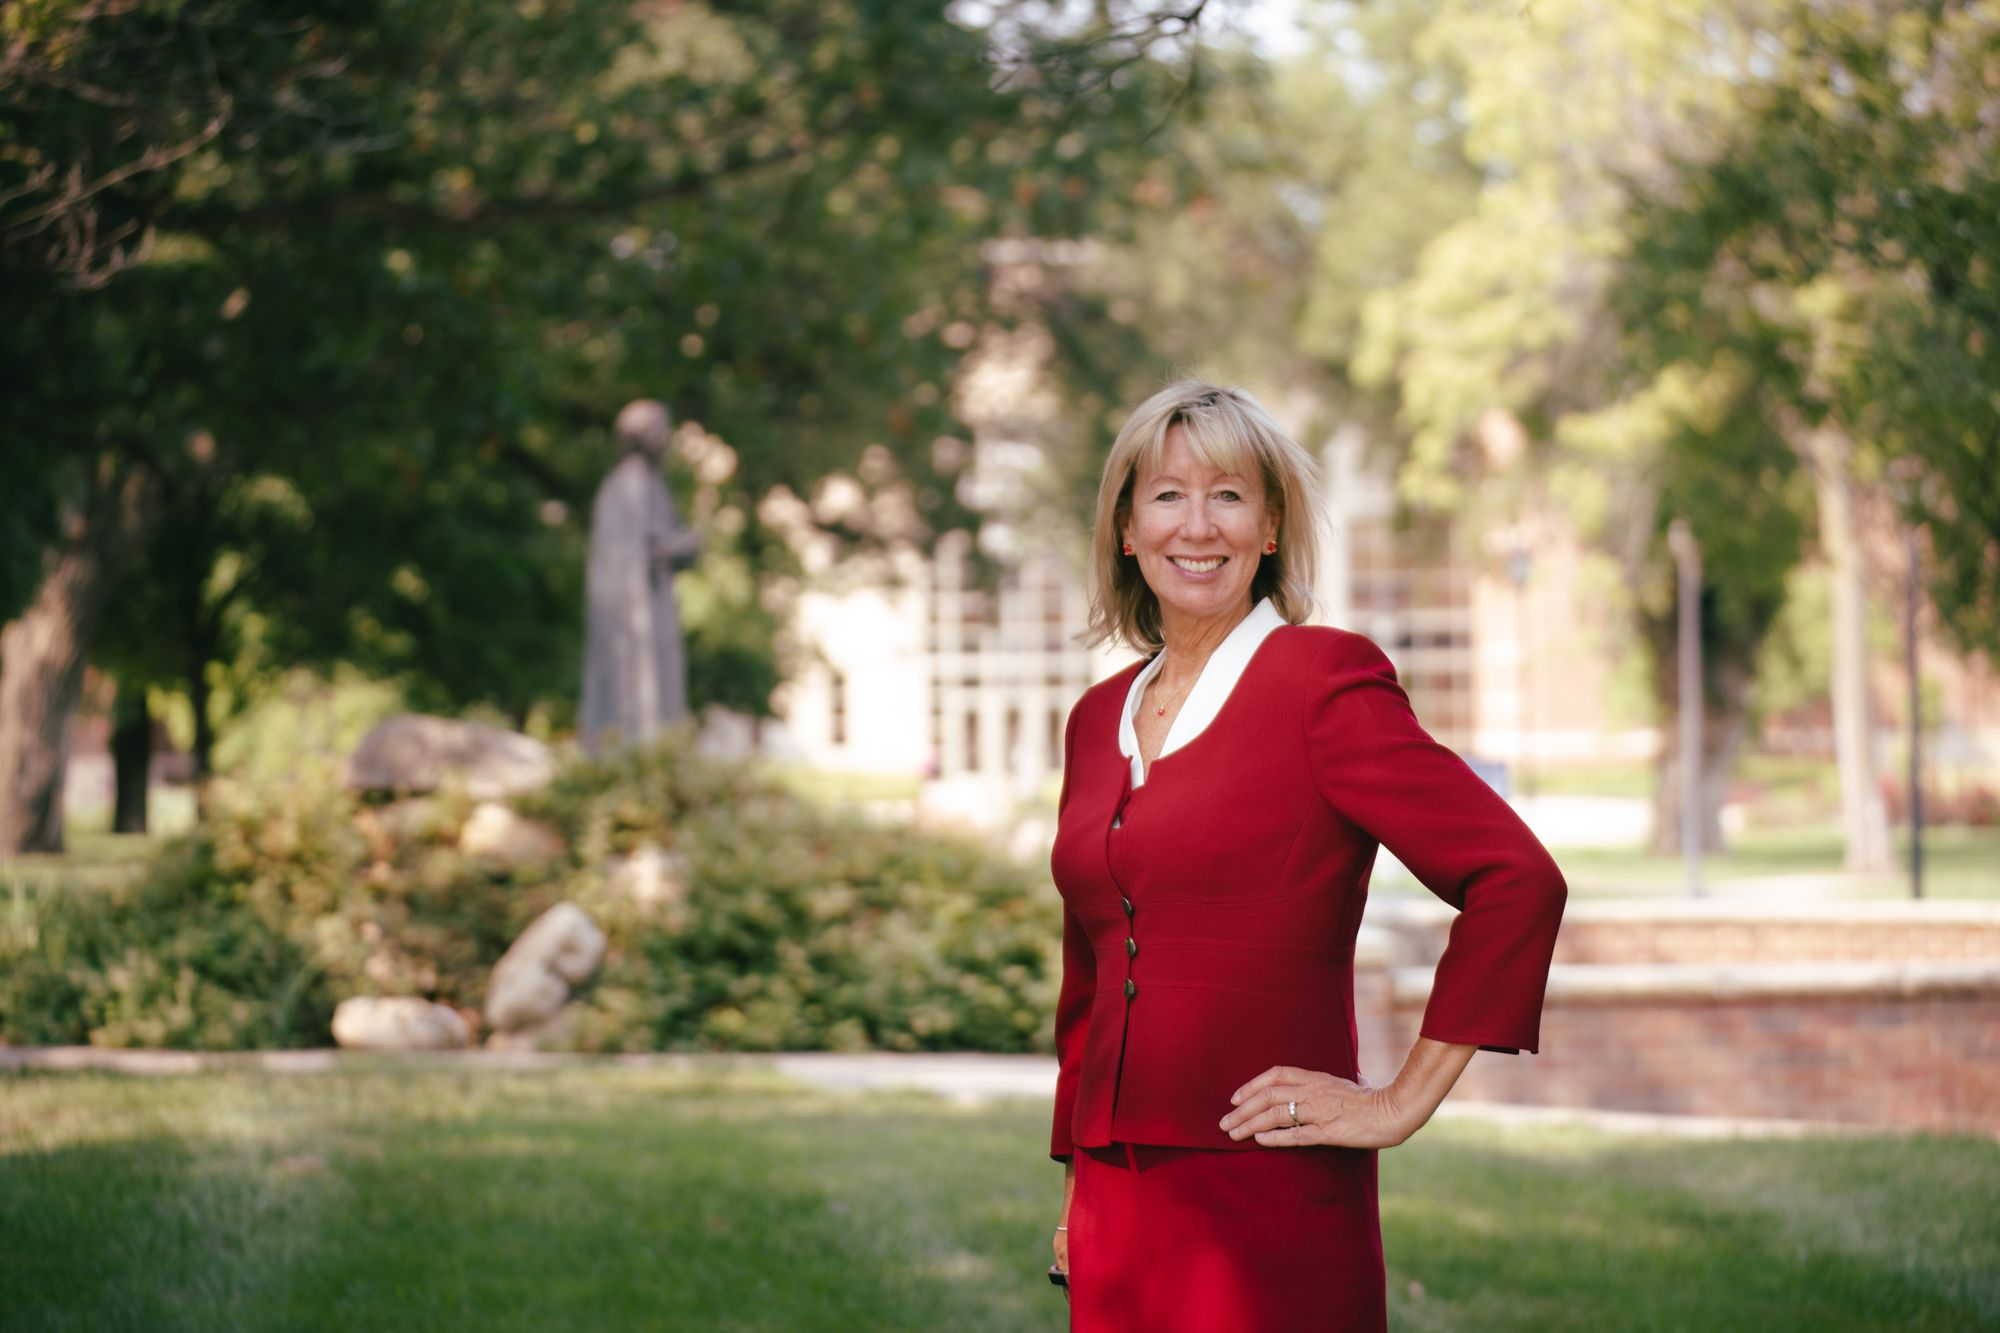 Familiar face on campus accepts new position